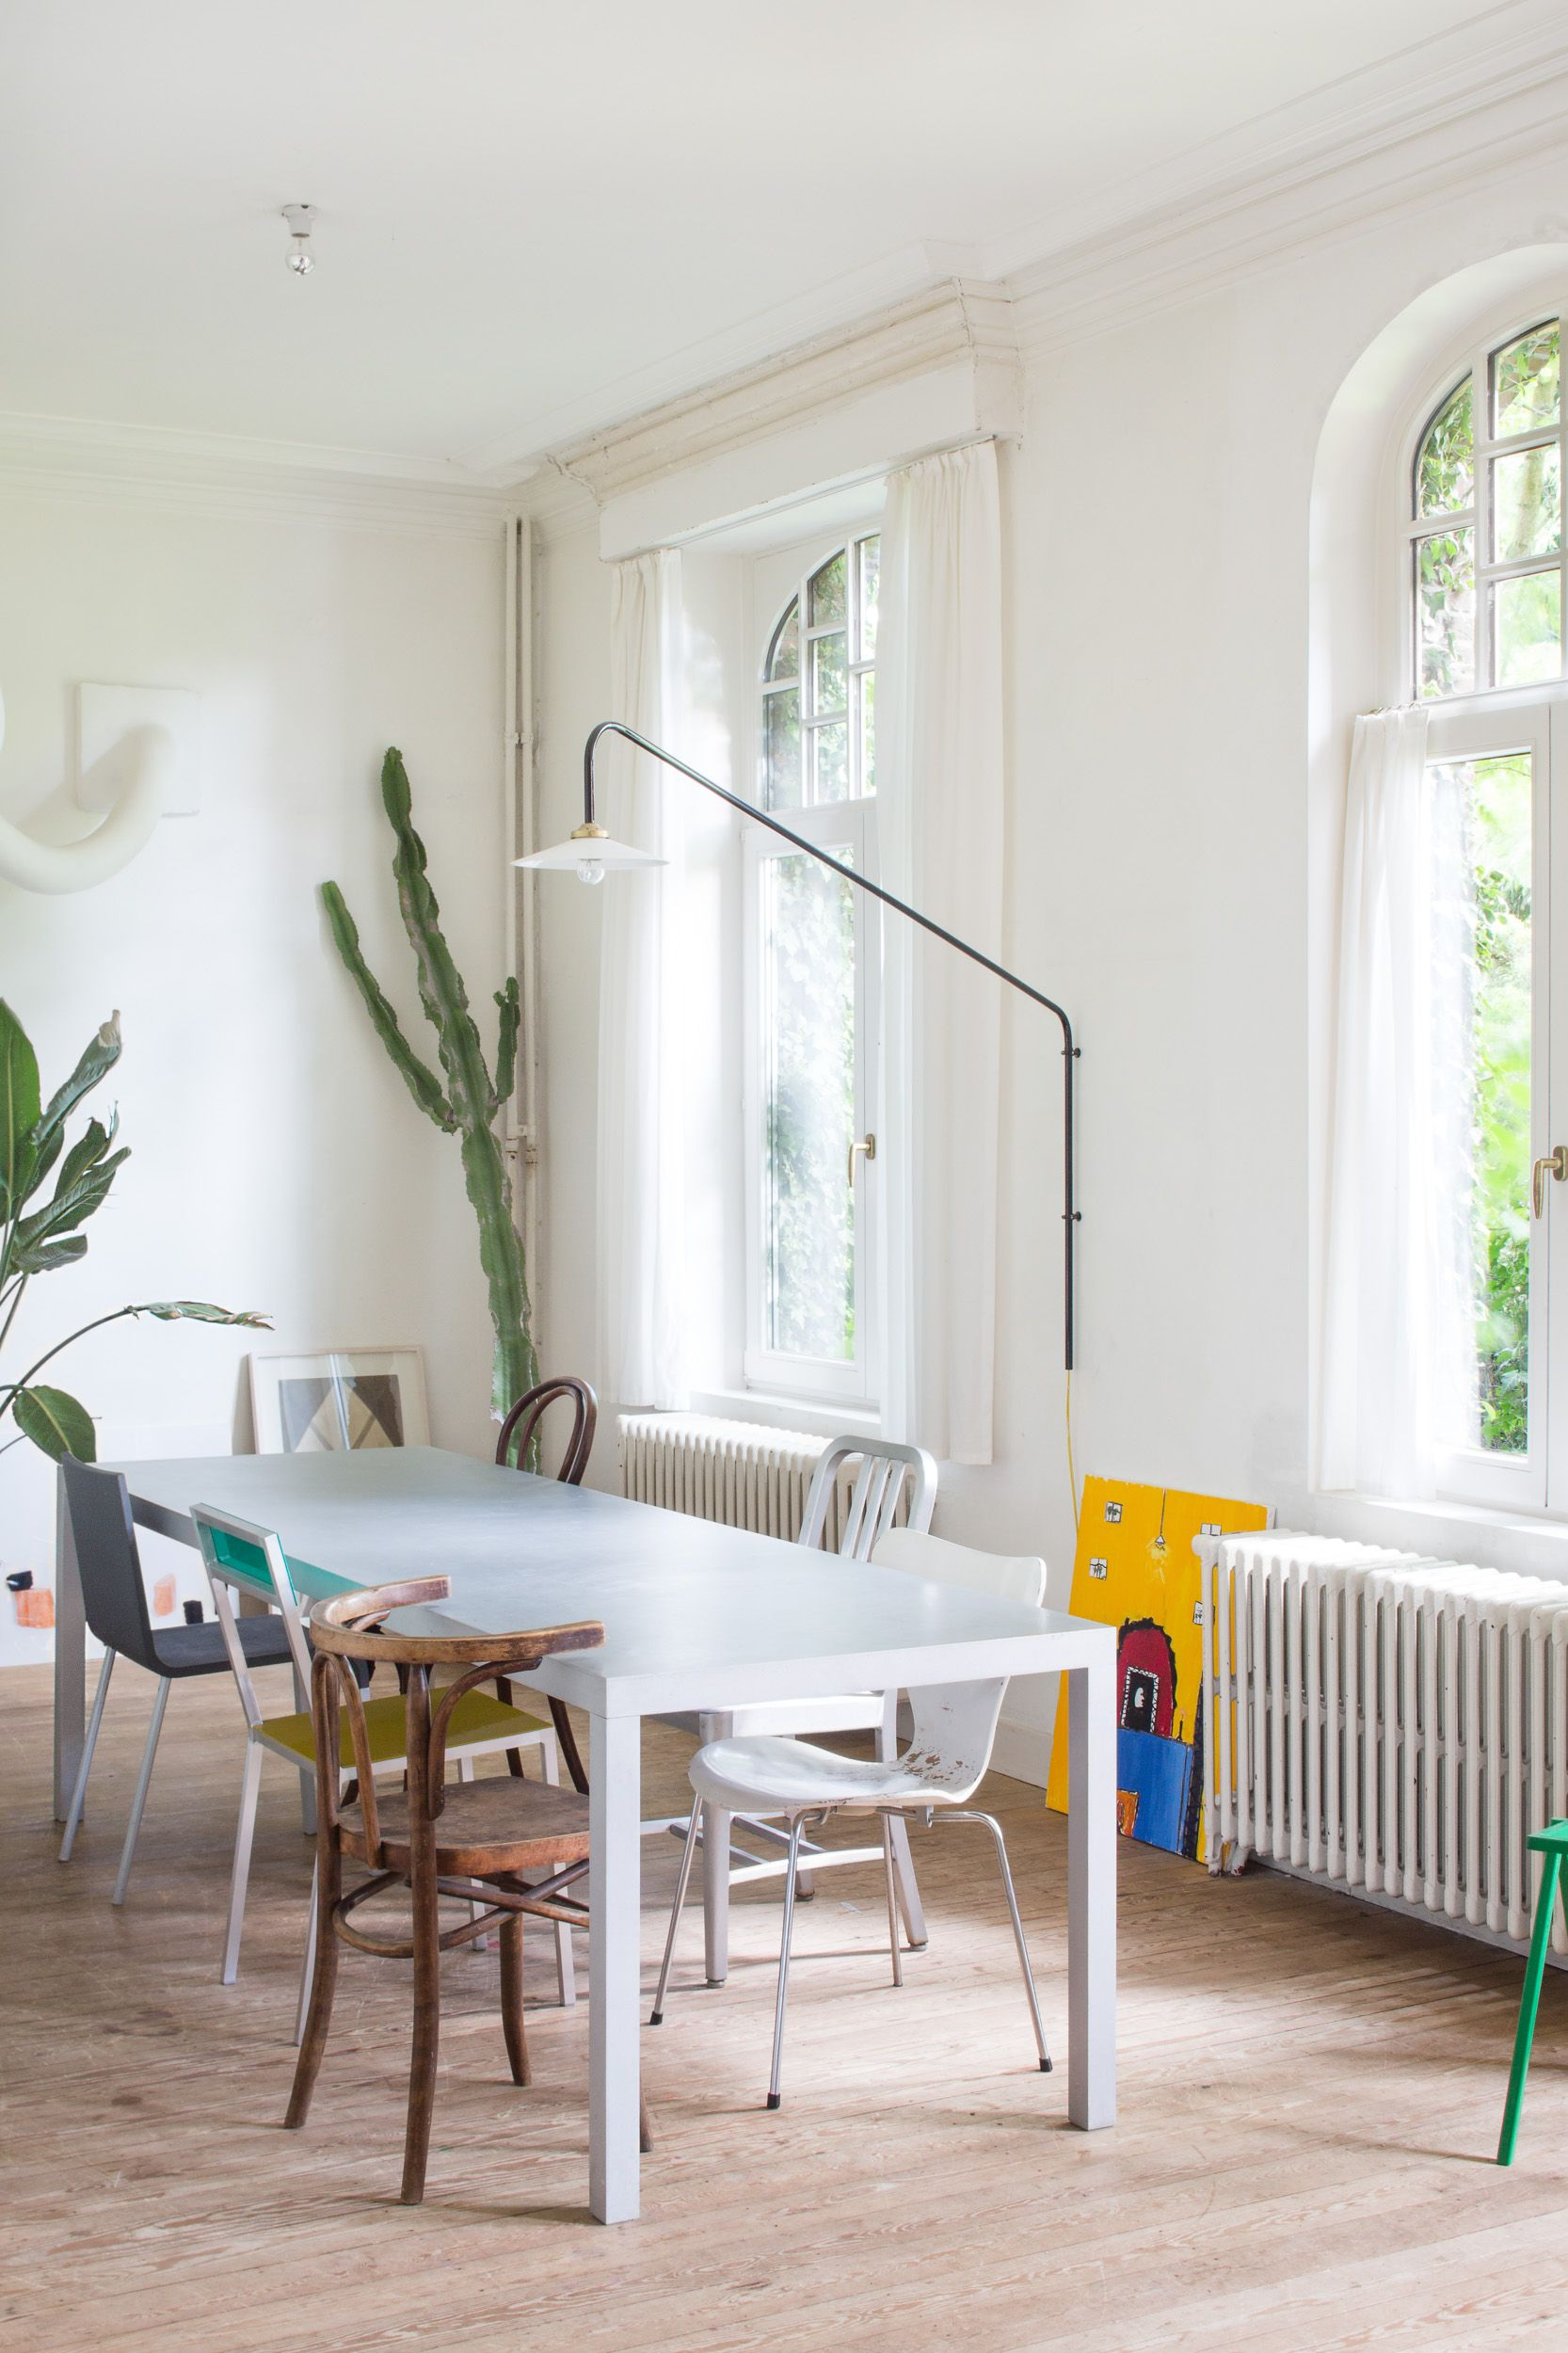 Pretty good mix up the house of my favorite furniture designers